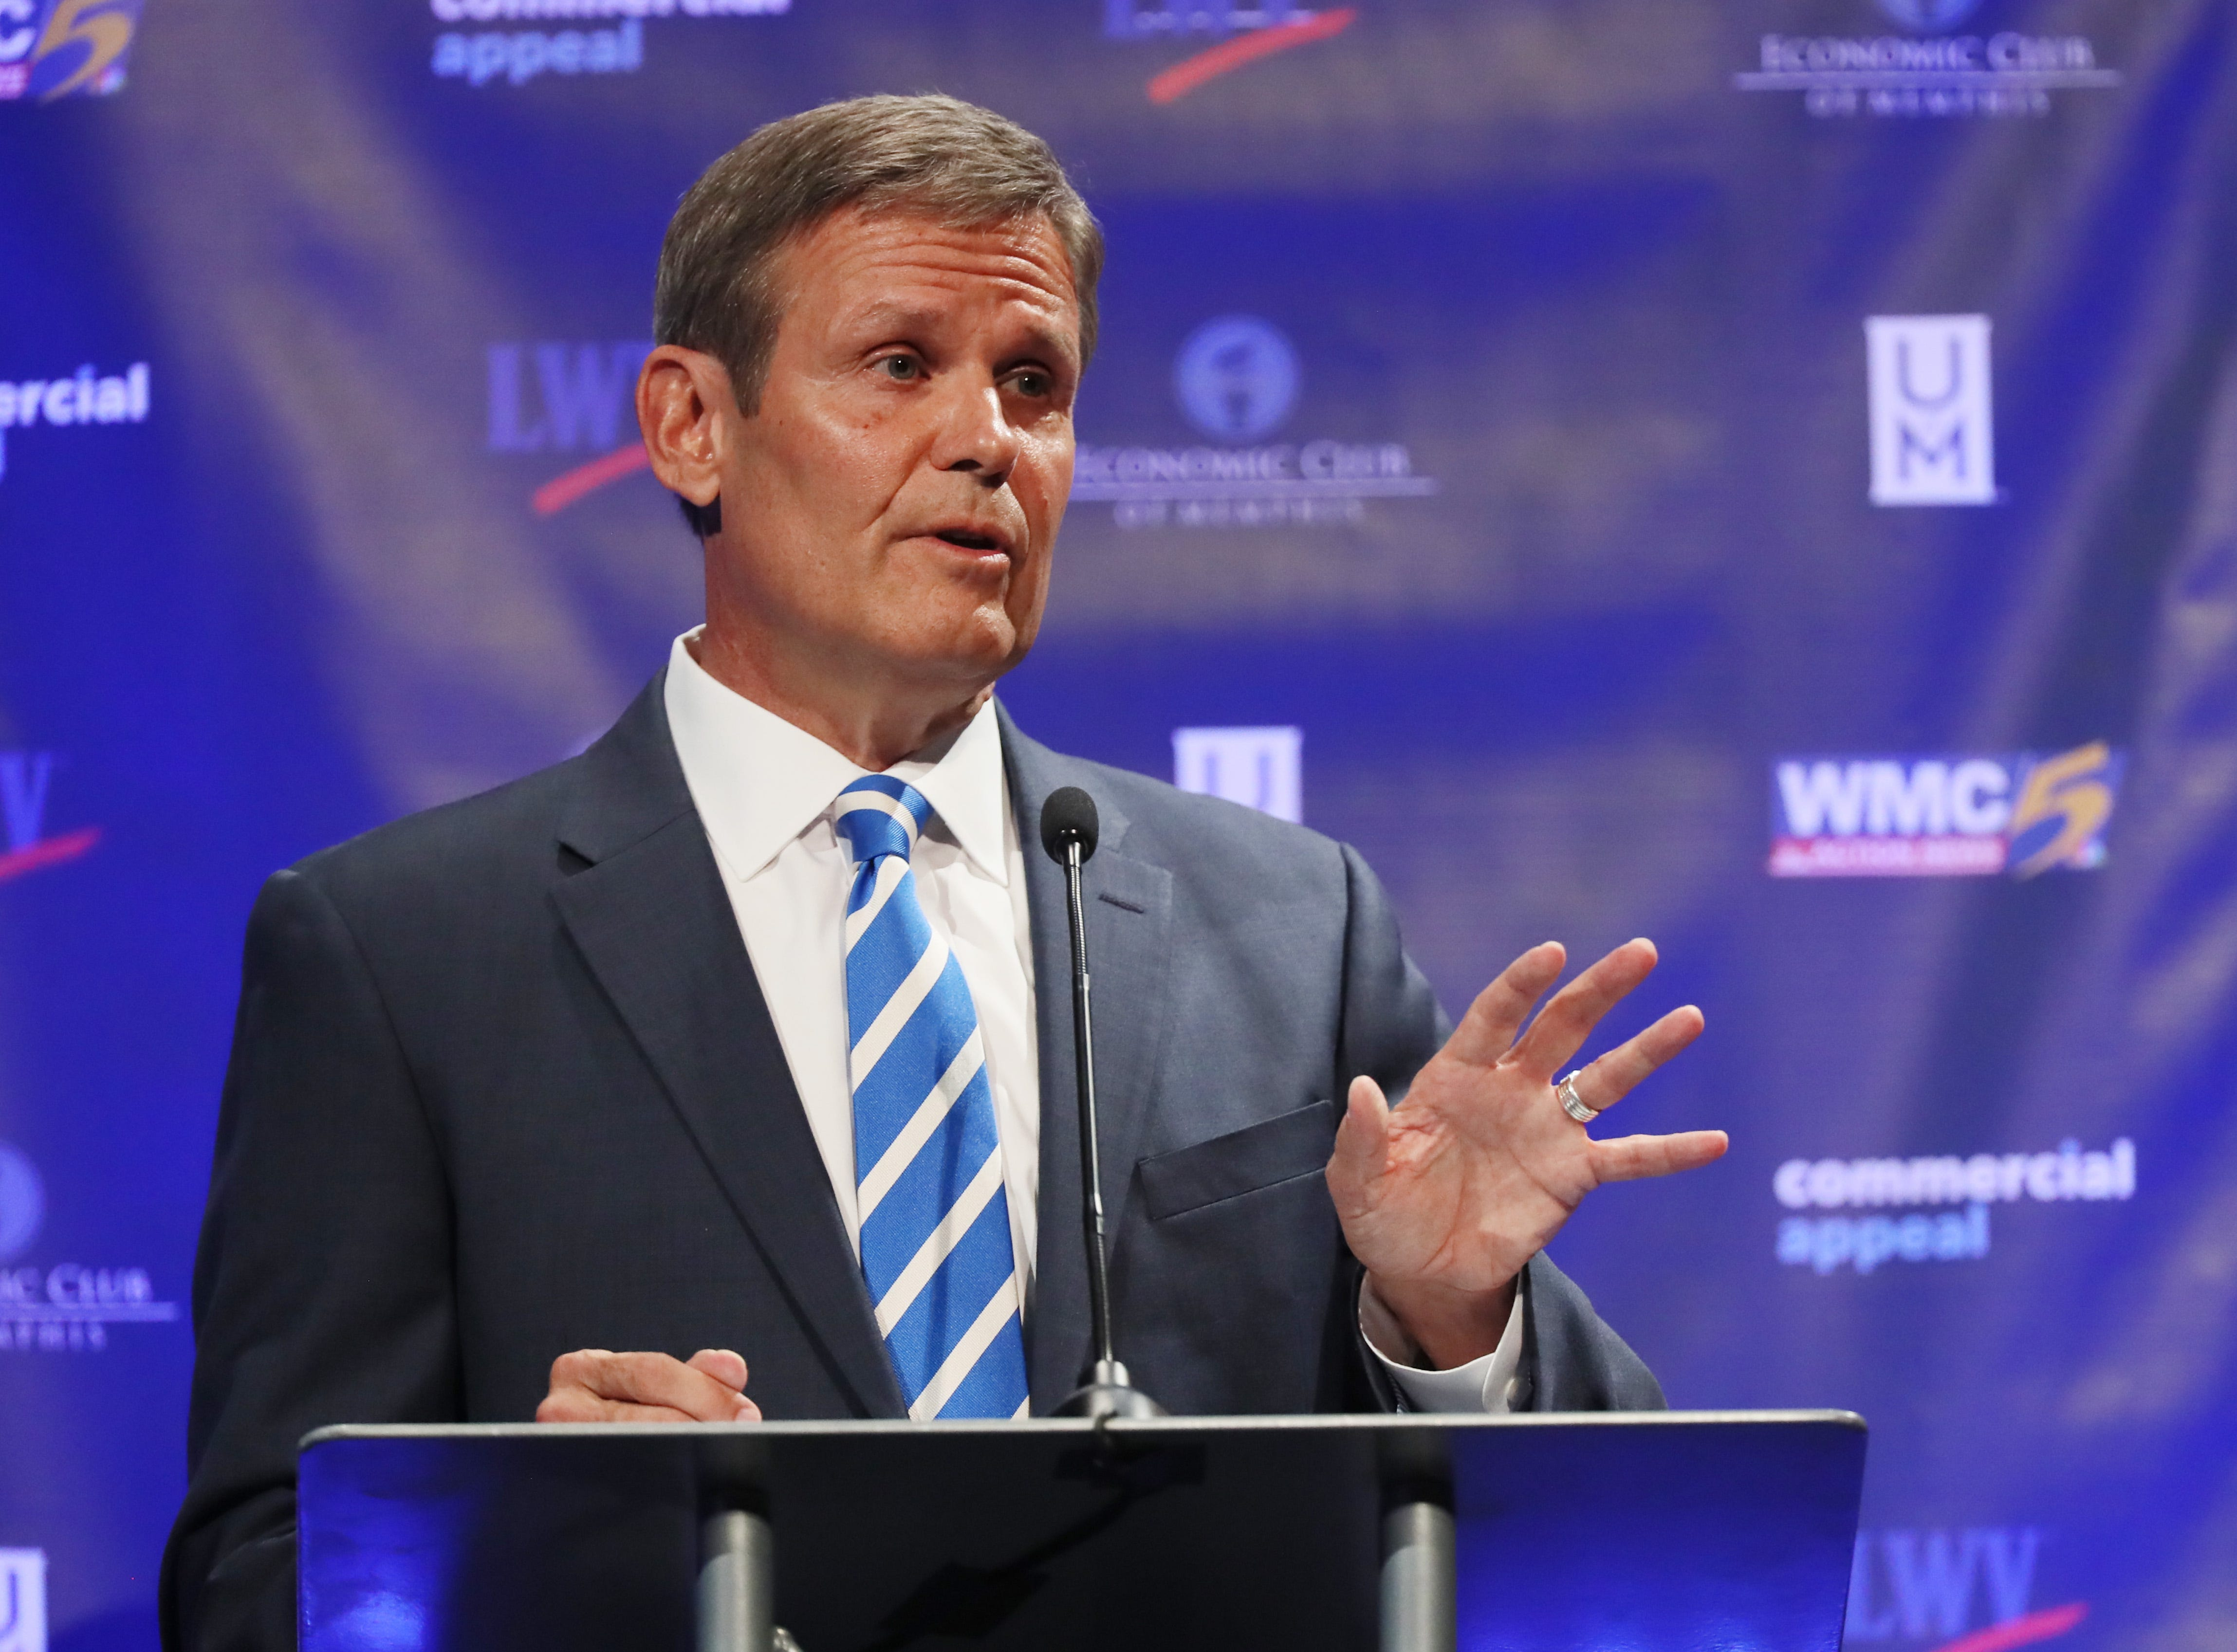 Republican candidate Bill Lee speaks at the gubernatorial debate at the University of Memphis' Michael D. Rose Theater in Memphis, Tenn., on Tuesday, Oct. 2, 2018.